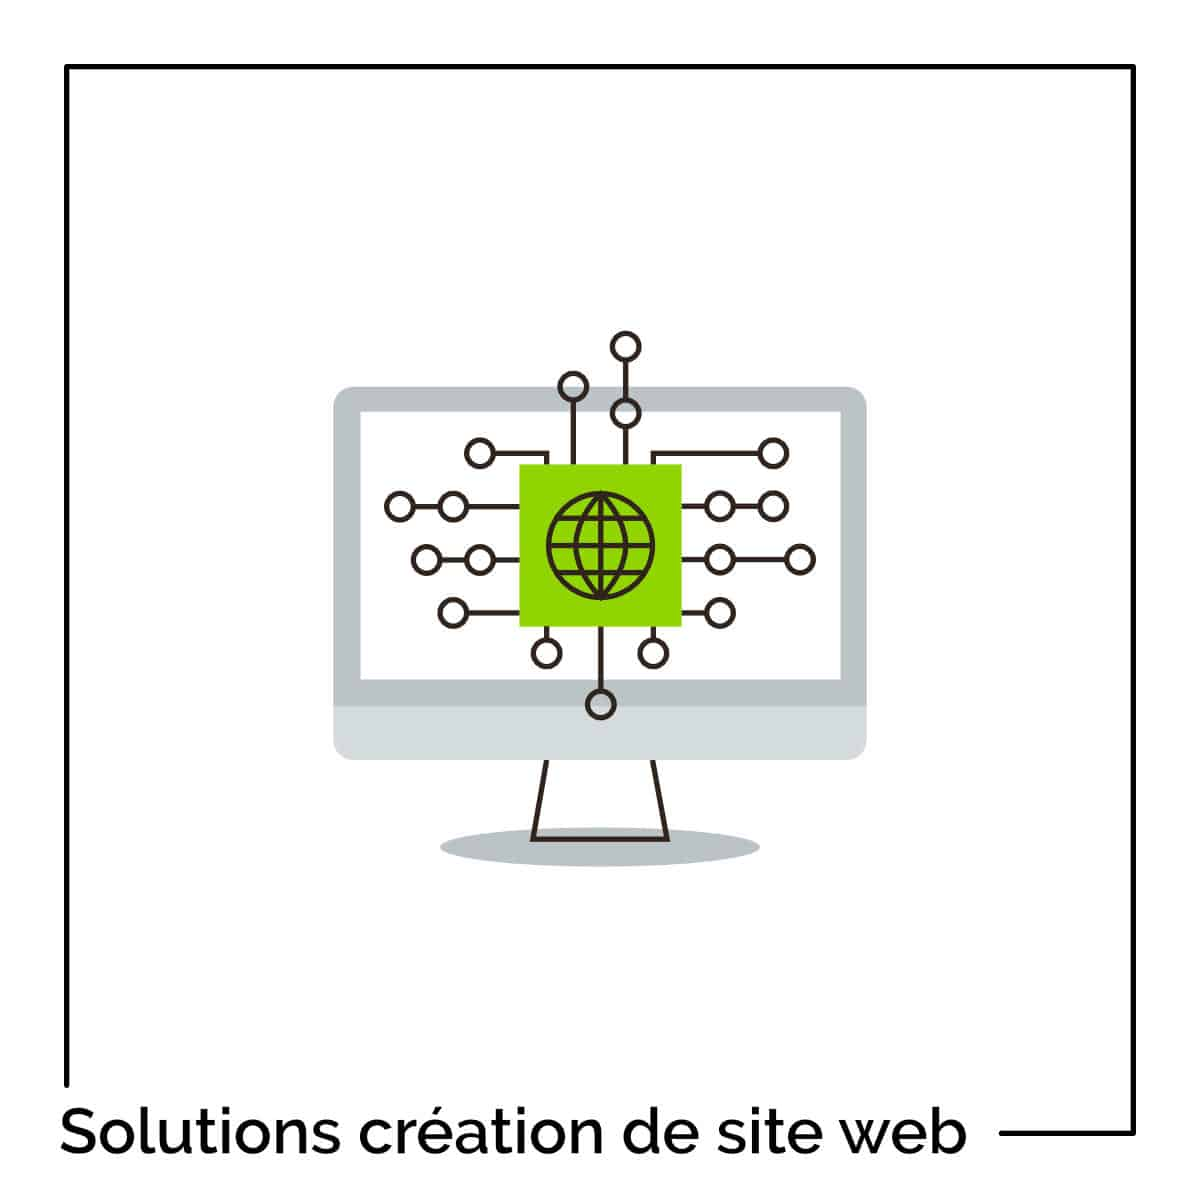 quelle solution choisir pour la creation d'un site web